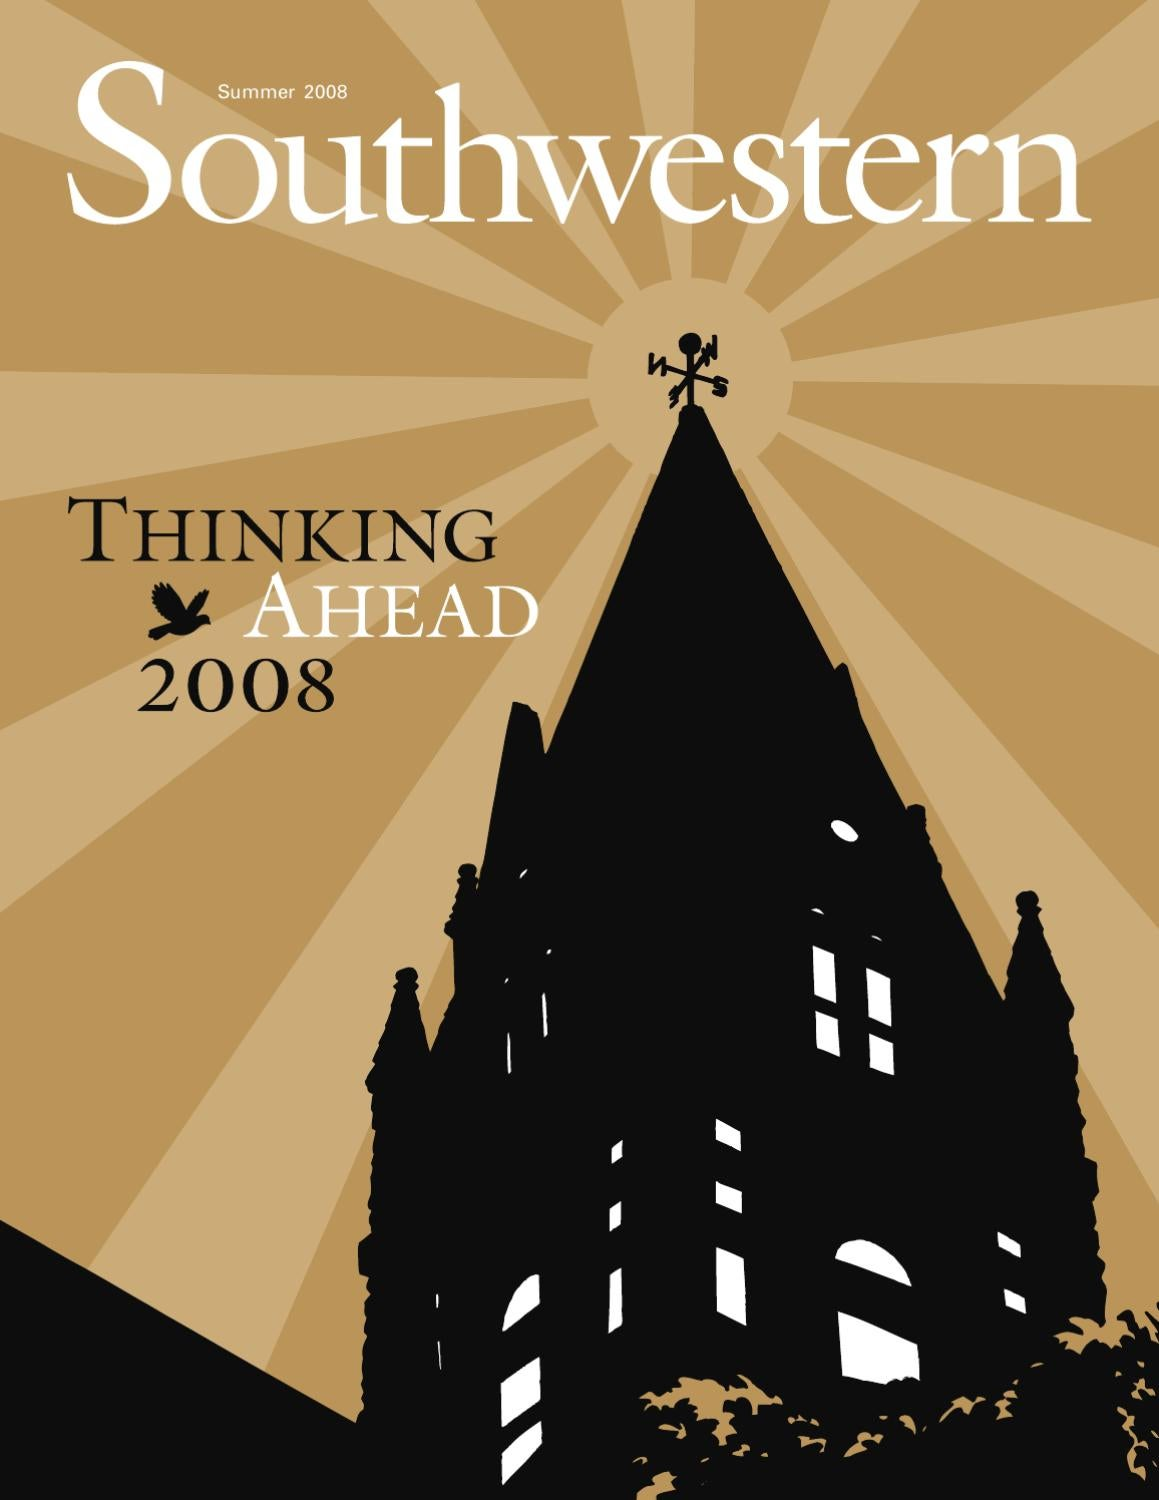 cost and southwestern university essay Free essay: operations analysis week 7 case study 2: southwestern university a (pp 94-95) see the case studies assignment rubric in doc sharing for.